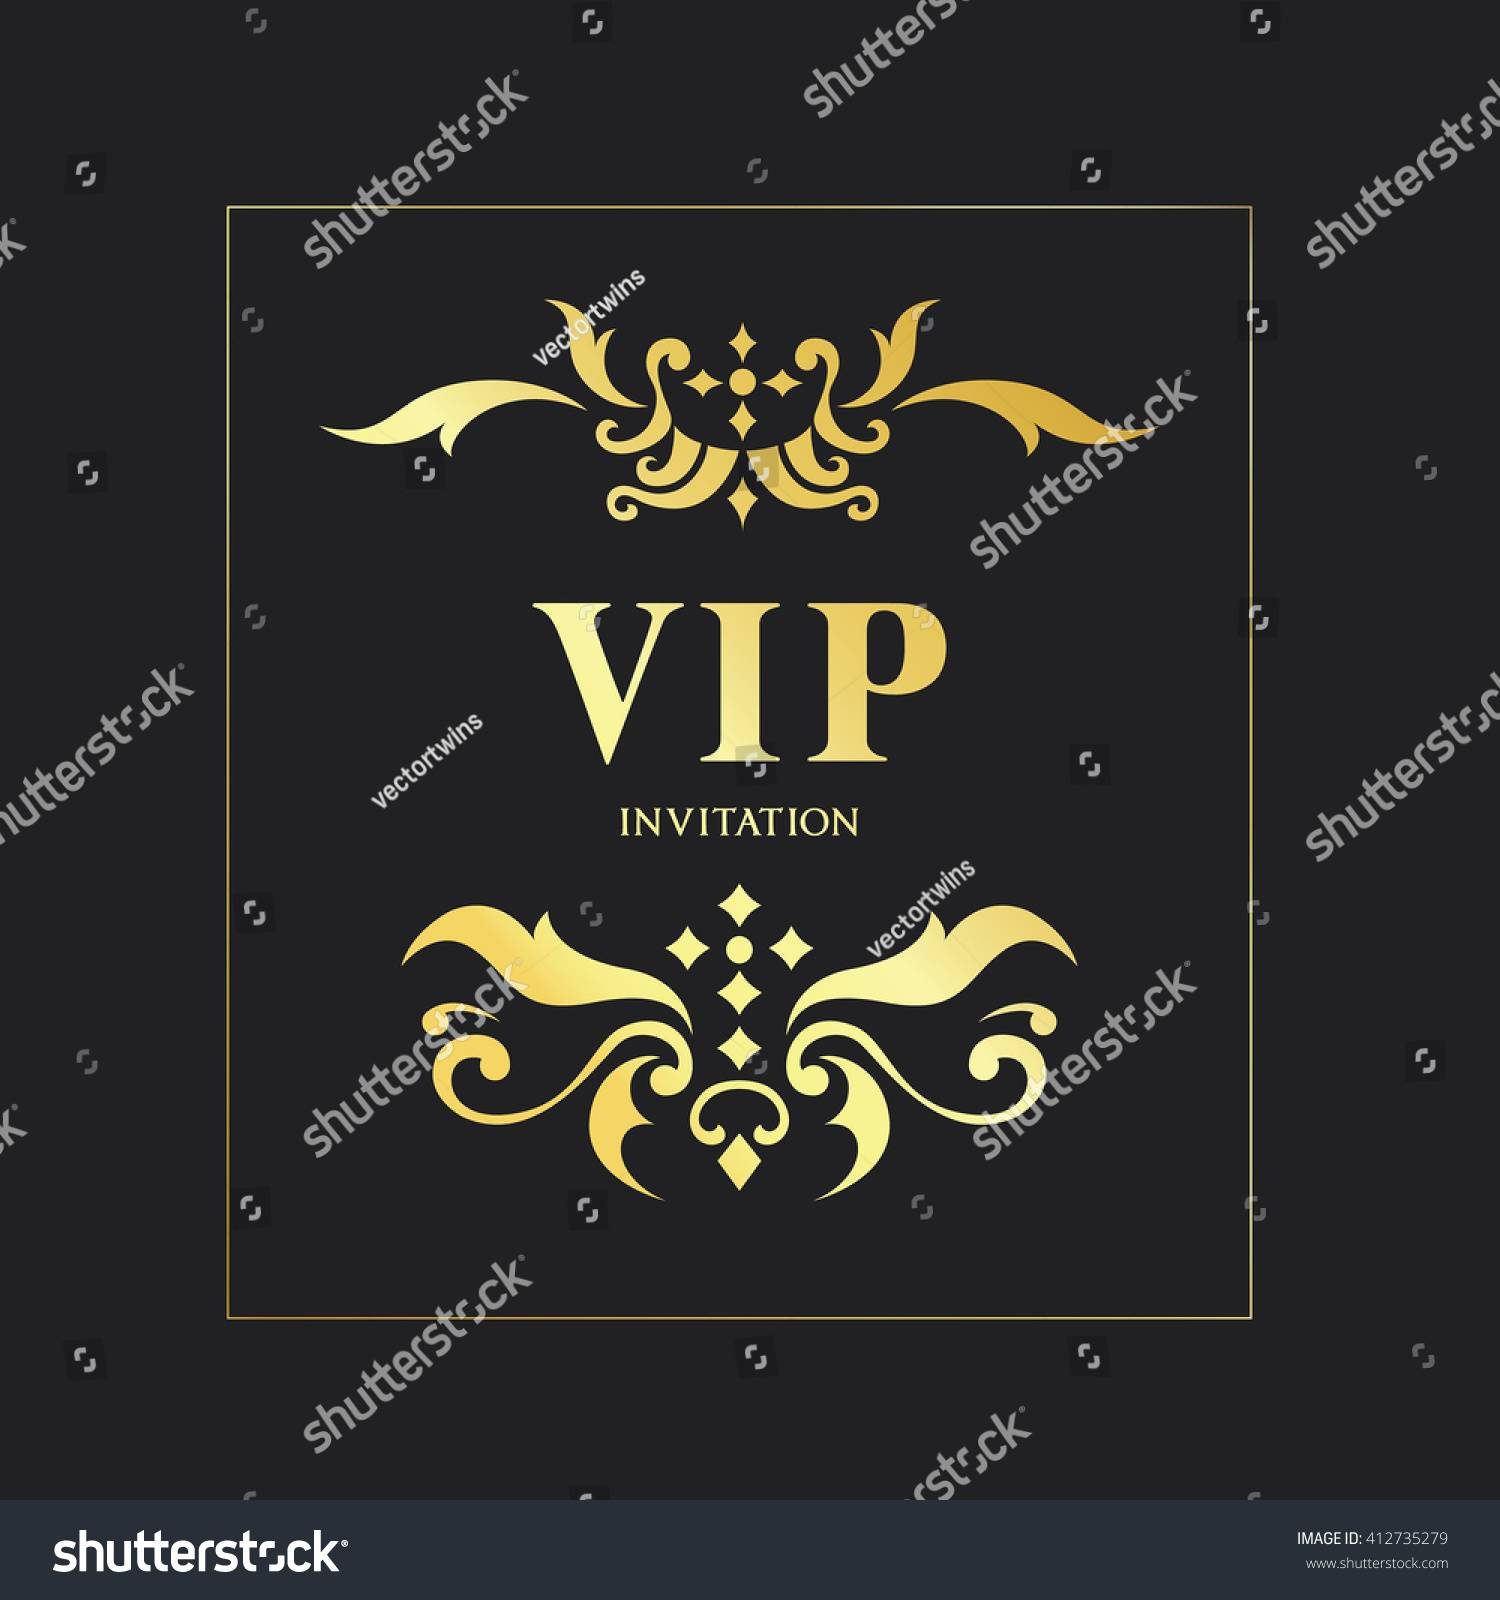 Vip Invitation Card Template Free